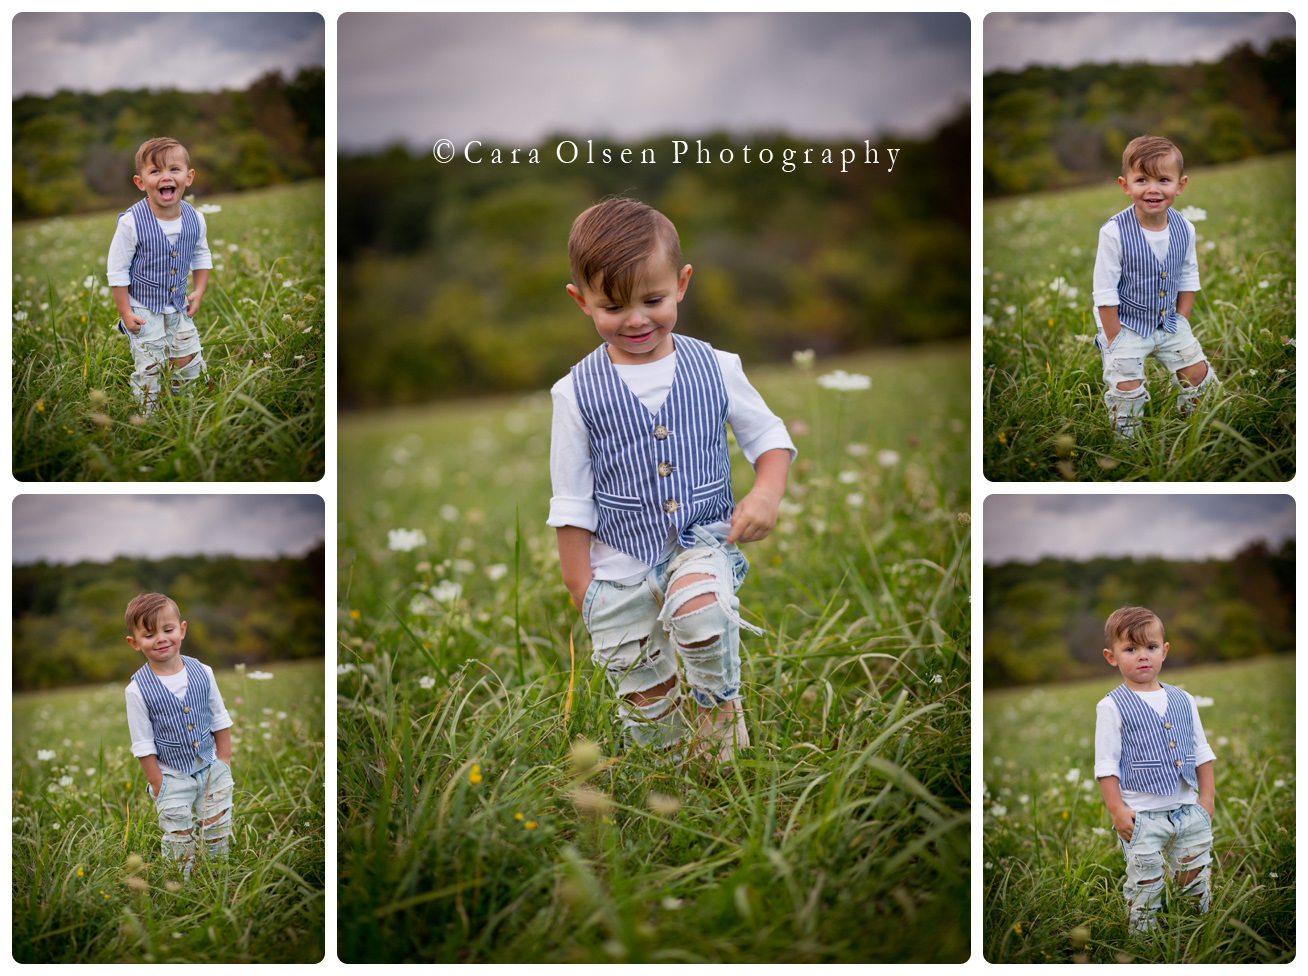 Capital District Child & Family Photography